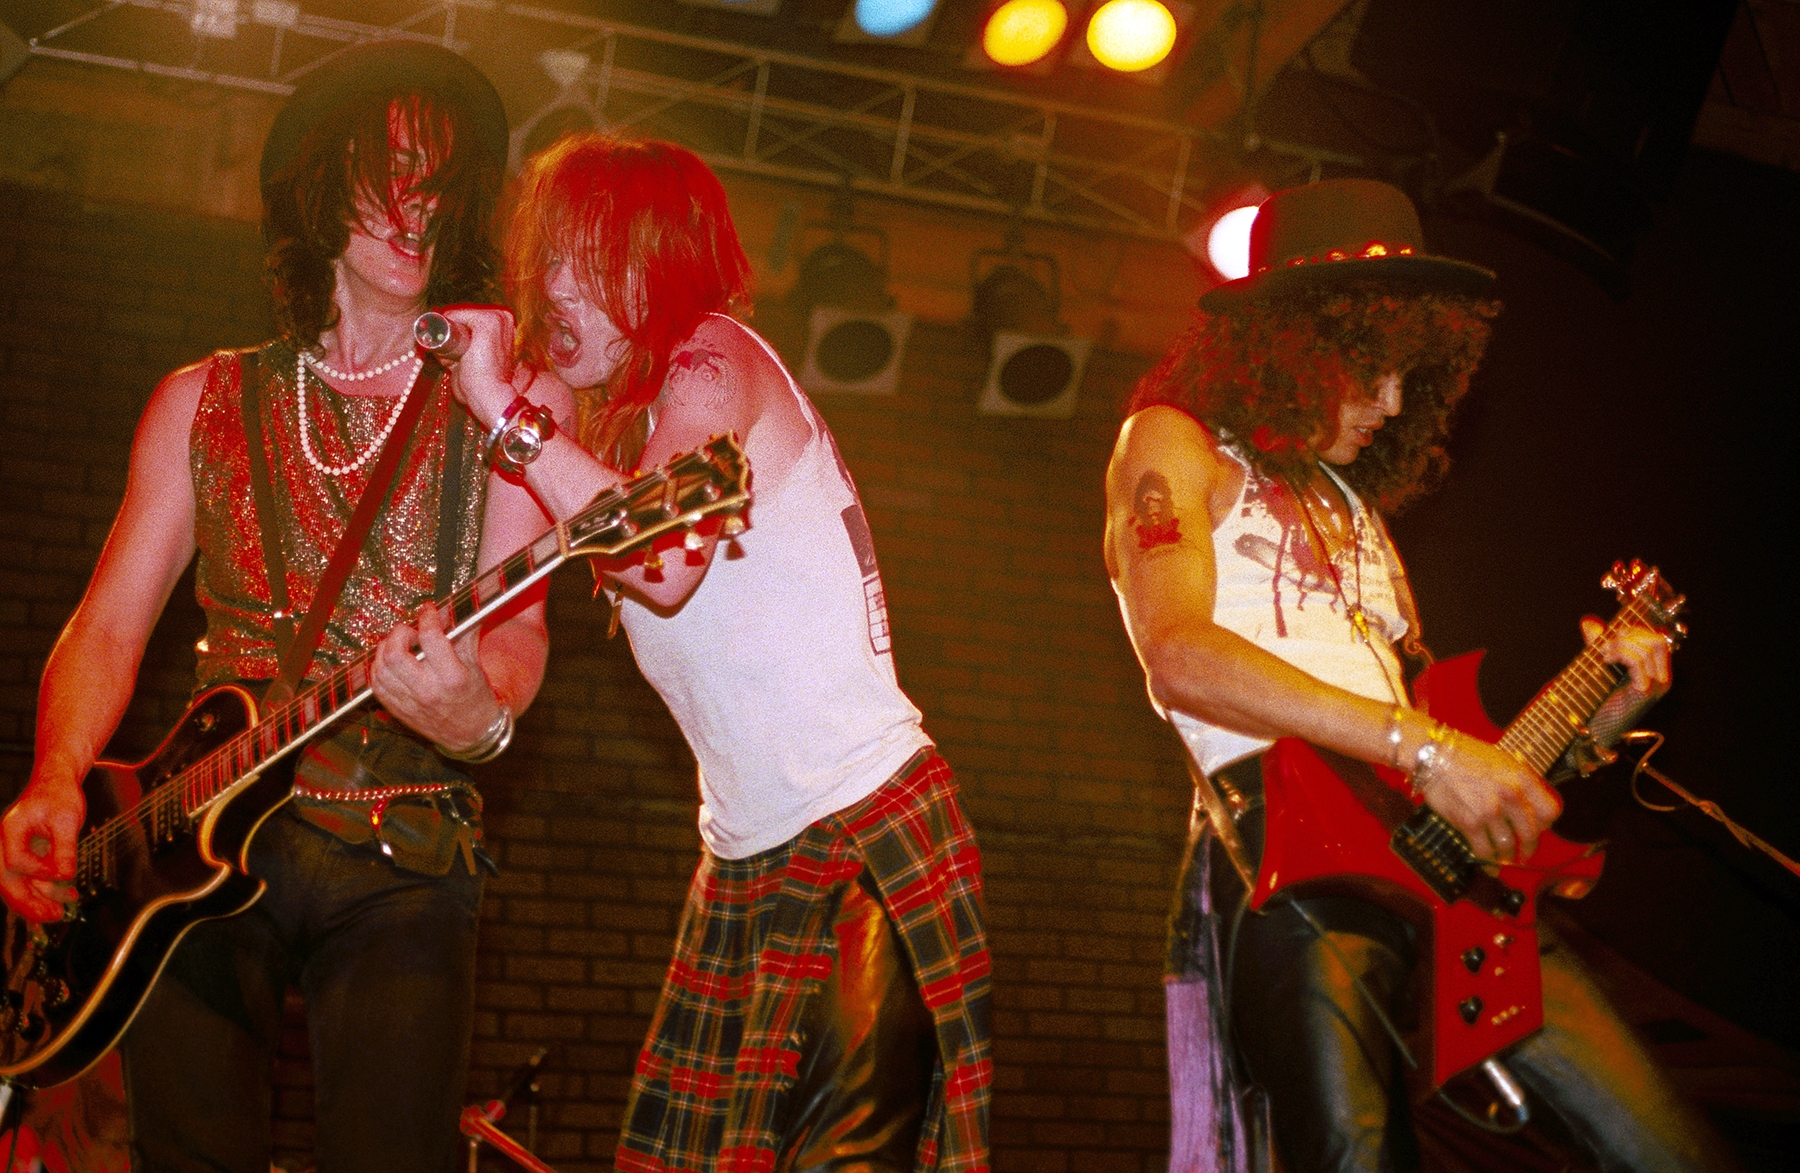 """LOS ANGELES - JUNE 6: (L-R) Izzy Stradlin, Axl Rose and Slash of the rock band 'Guns n' Roses' perform onstage at the Troubadour with the """"Appettite for Destruction"""" lineup together for the first time on June 6, 1985 in Los Angeles, California. (Photo by Marc S Canter/Michael Ochs Archives/Getty Images)"""